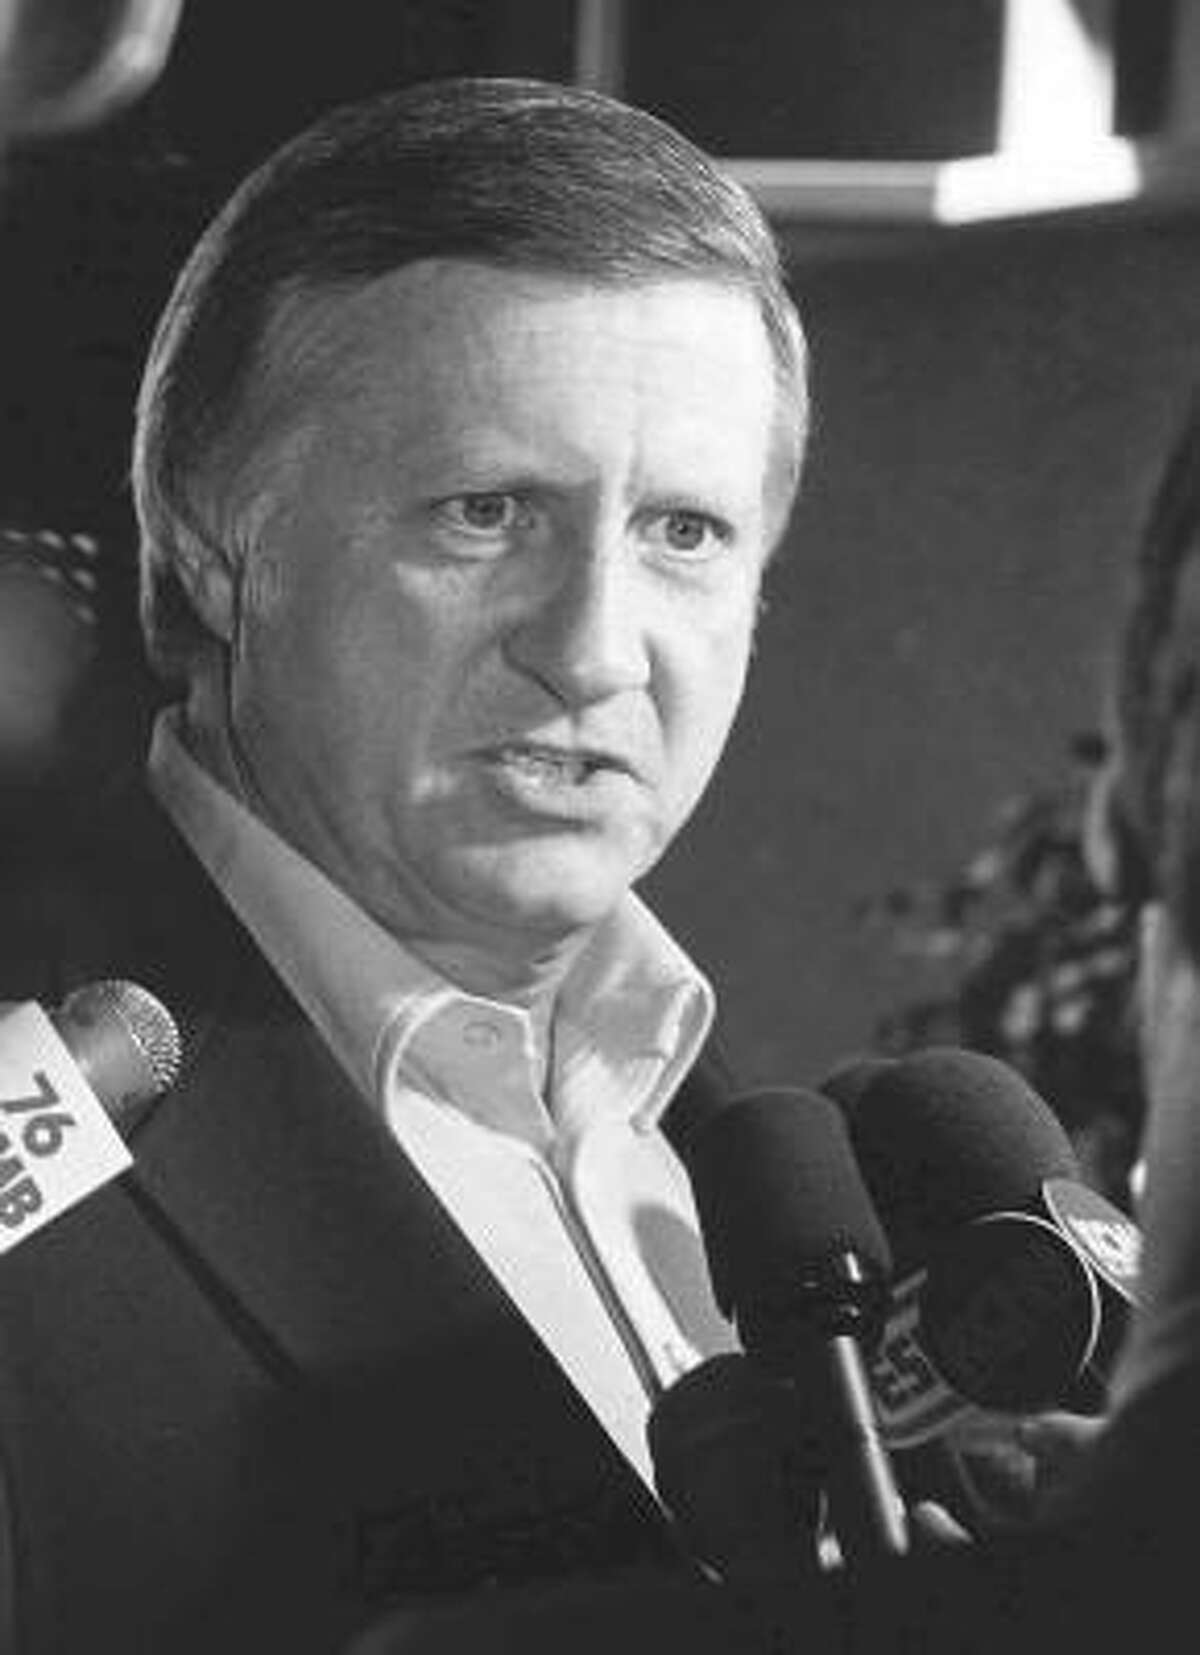 George Steinbrenner talks with members of the press at Yankee Stadium in New York on April 25, 1974.